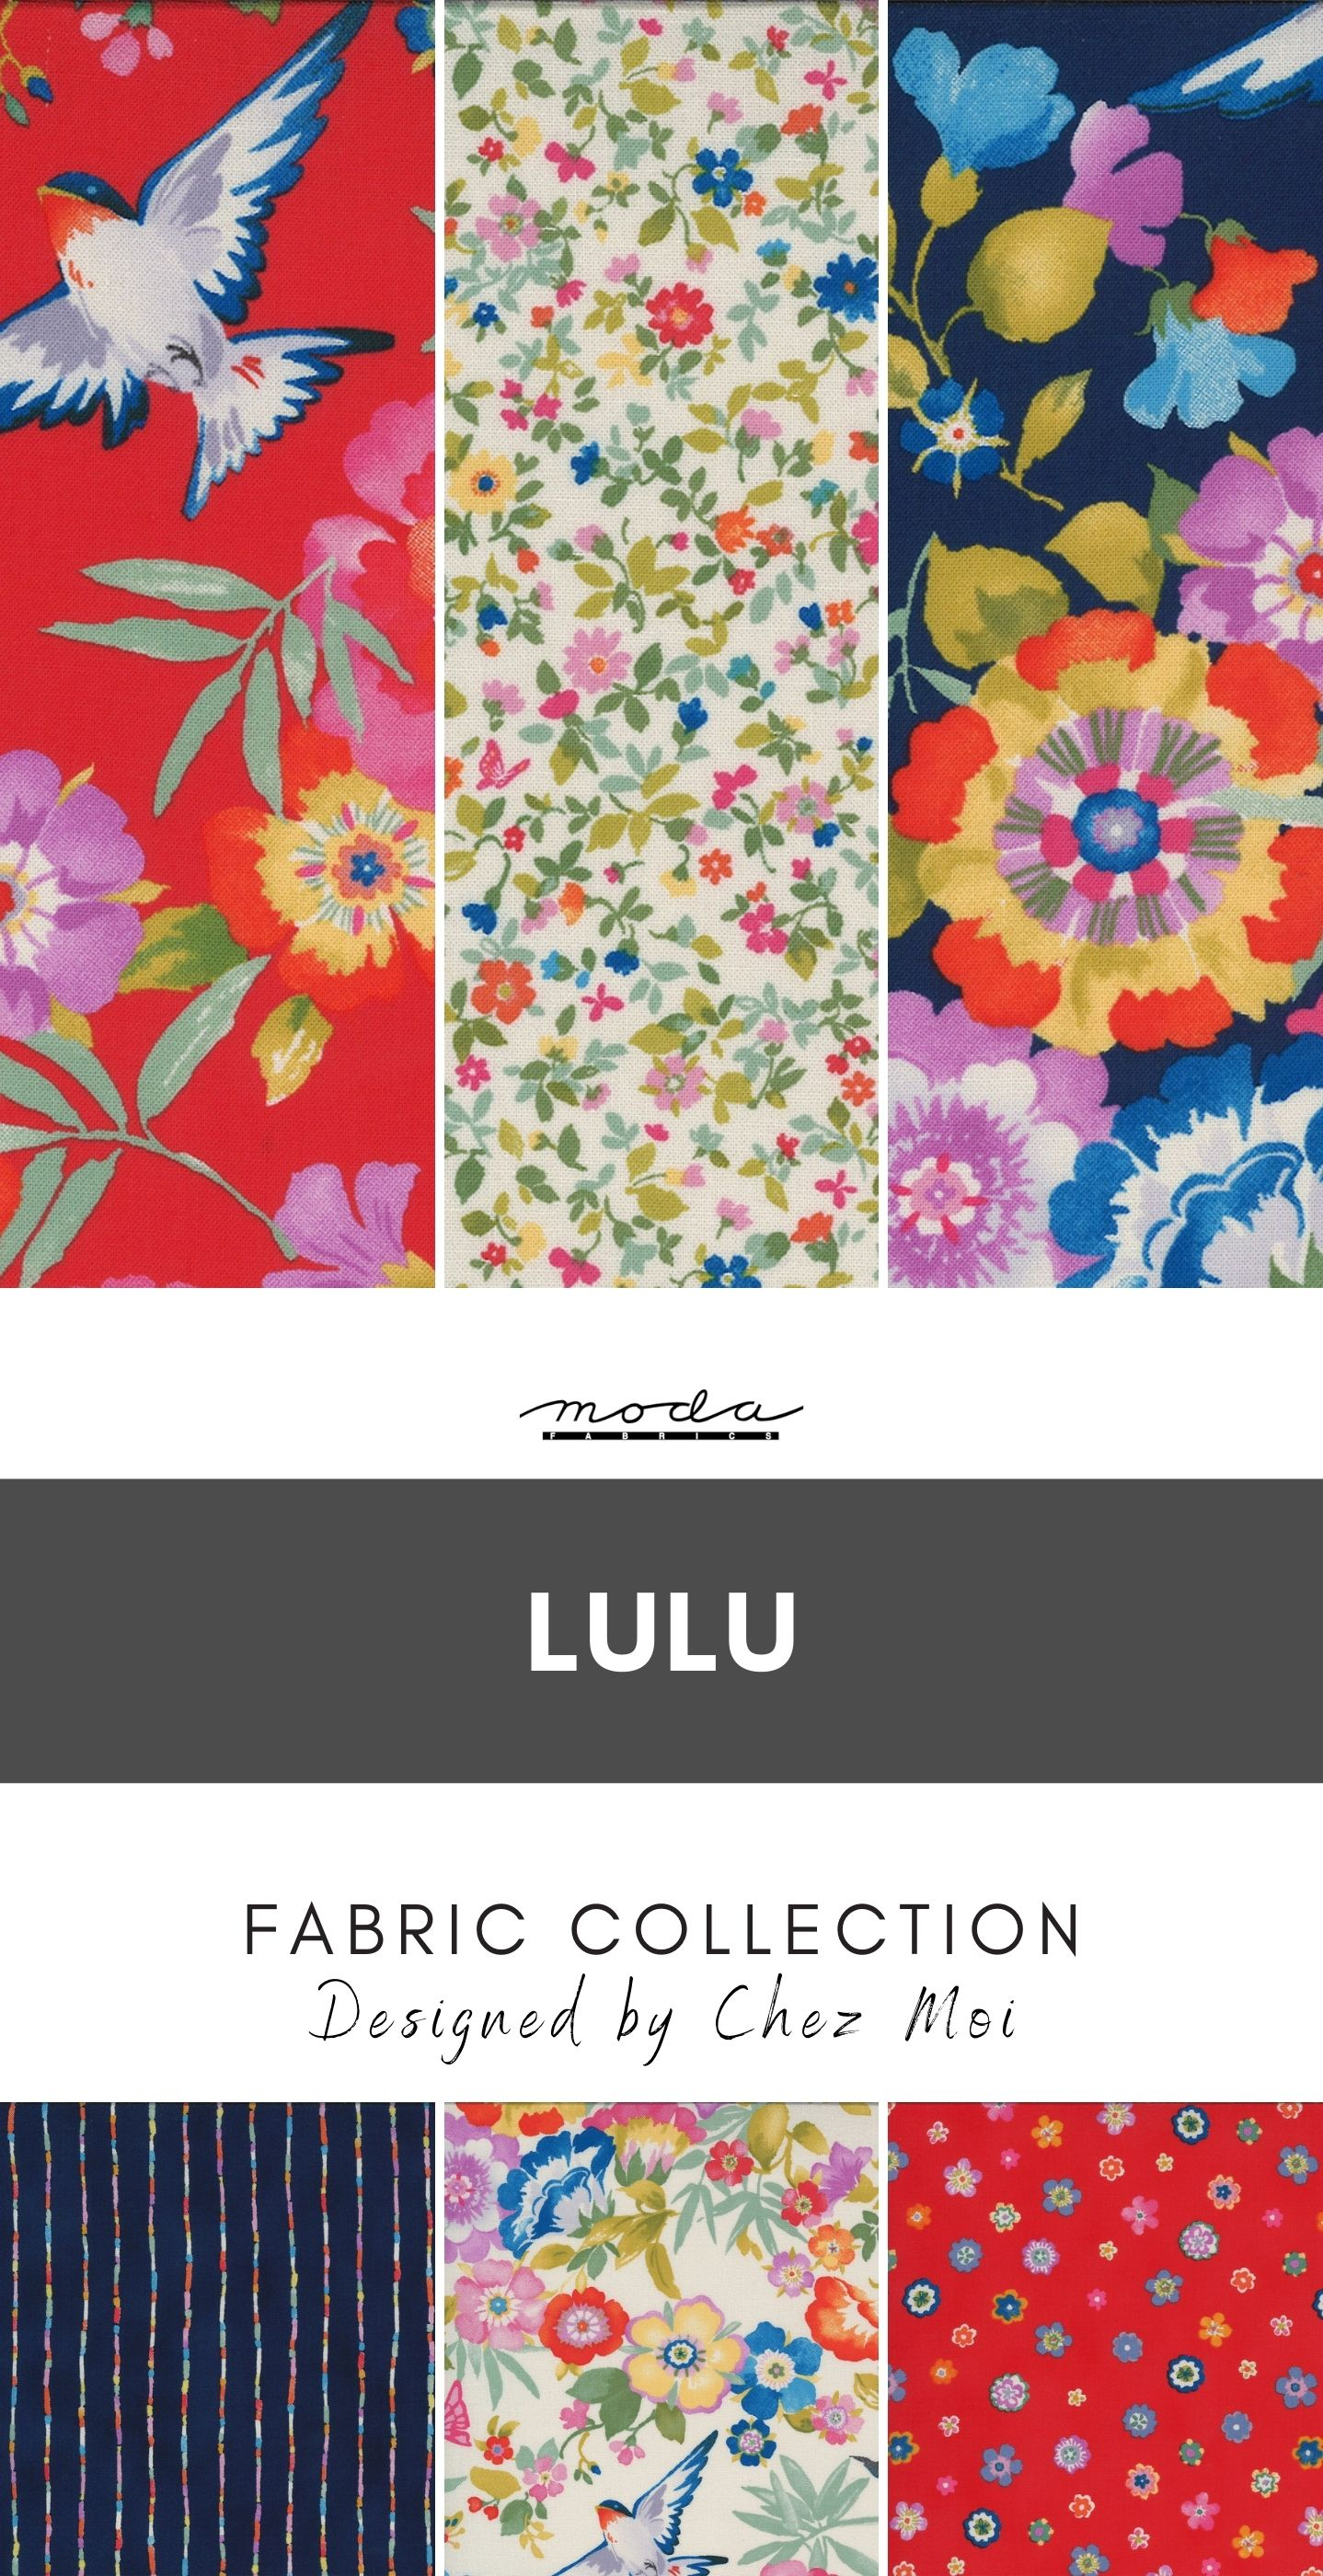 Lulu Fabric Collection